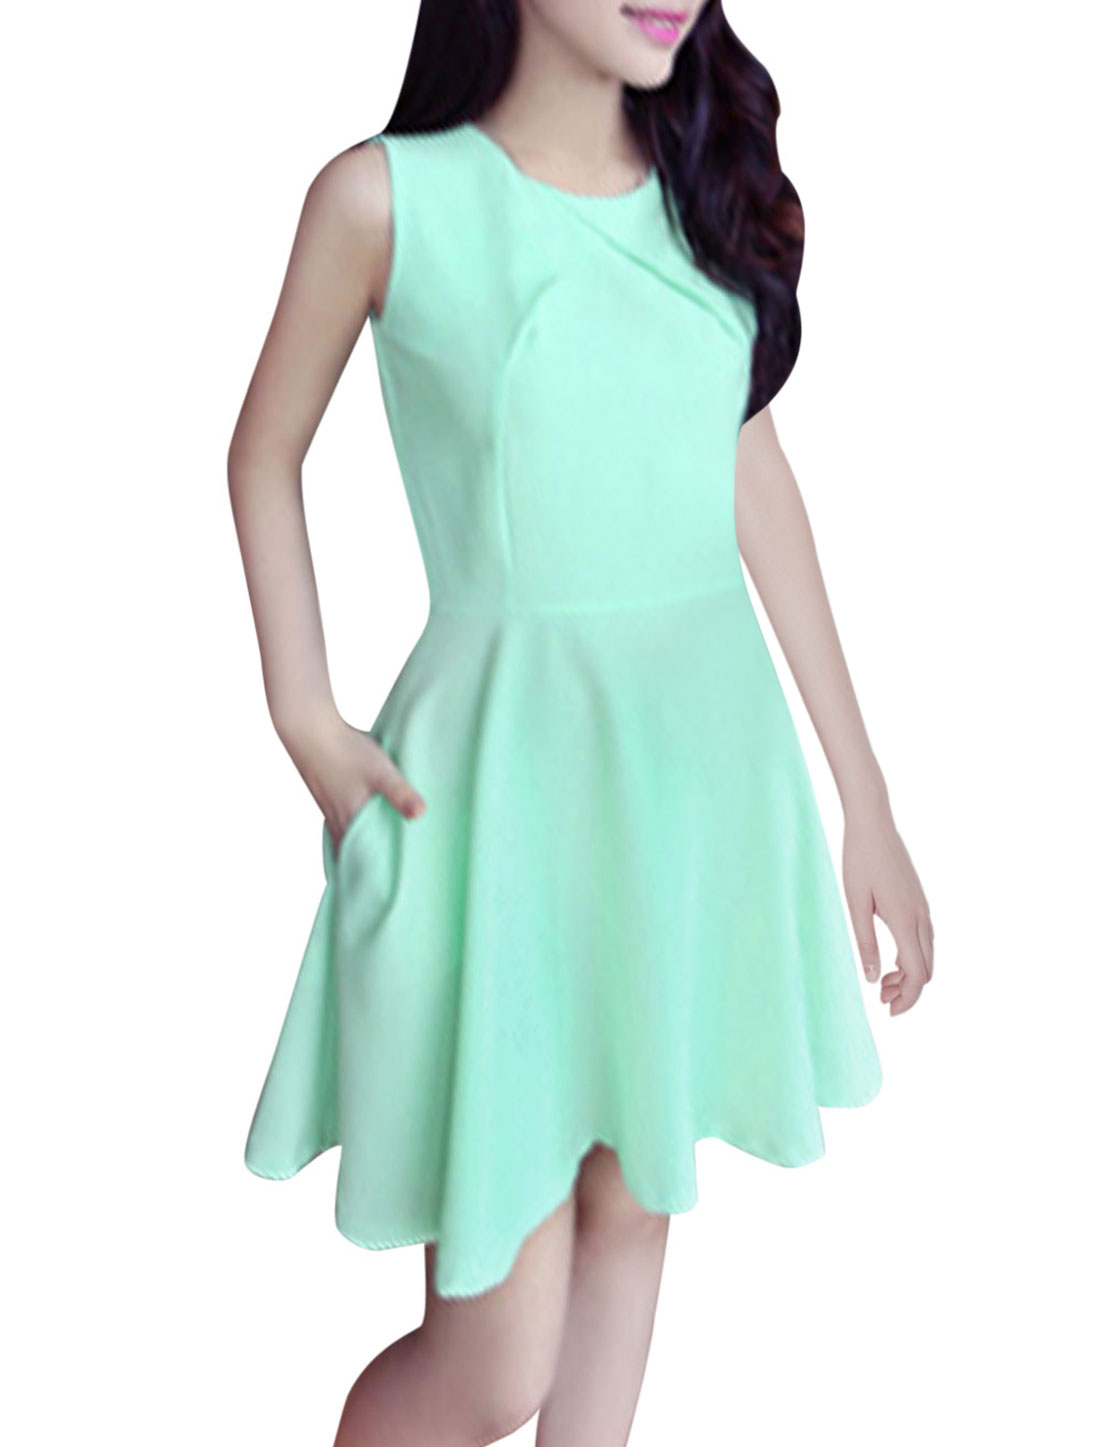 Lady Chic Sleeveless Concealed Zipper Back Skater Dress Mint XS